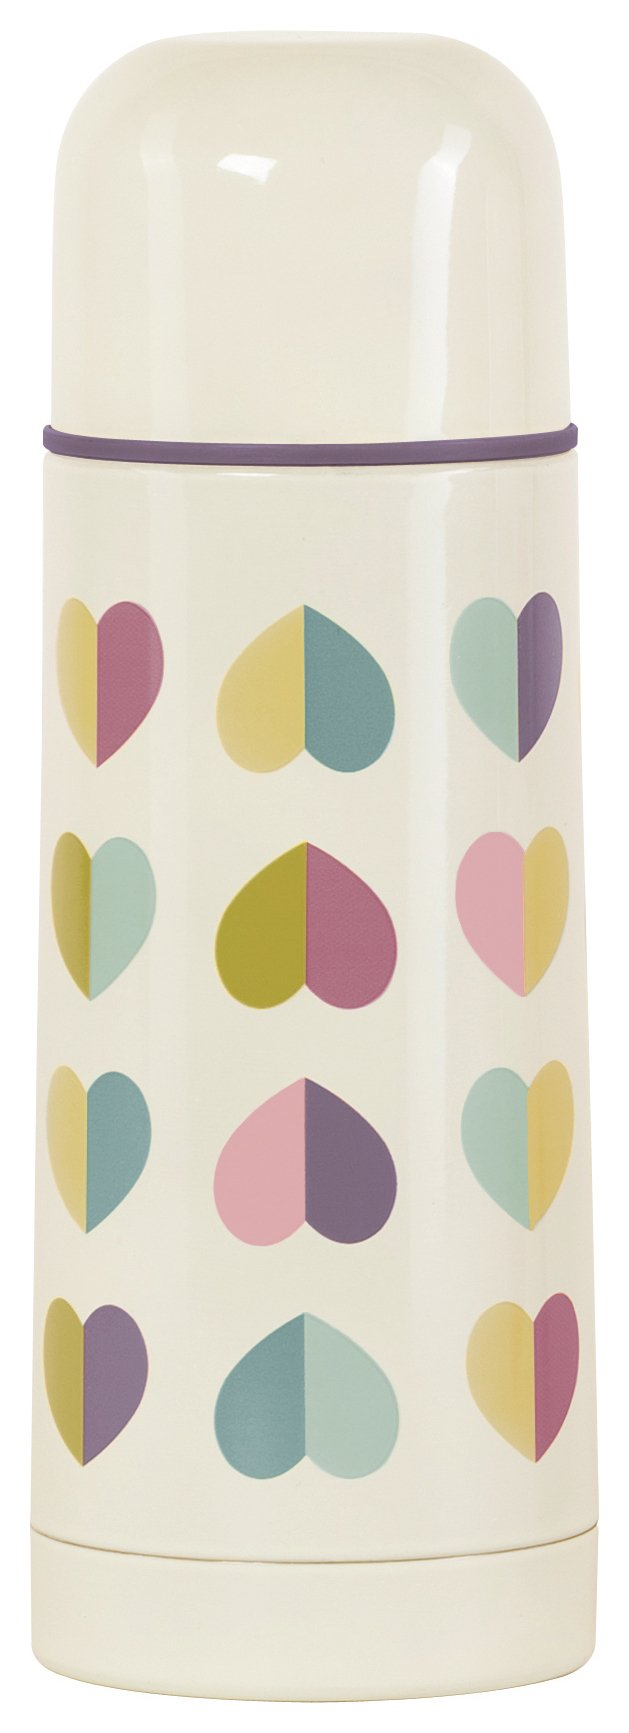 Image of Beau and Elliot - Confetti Vacuum Flask